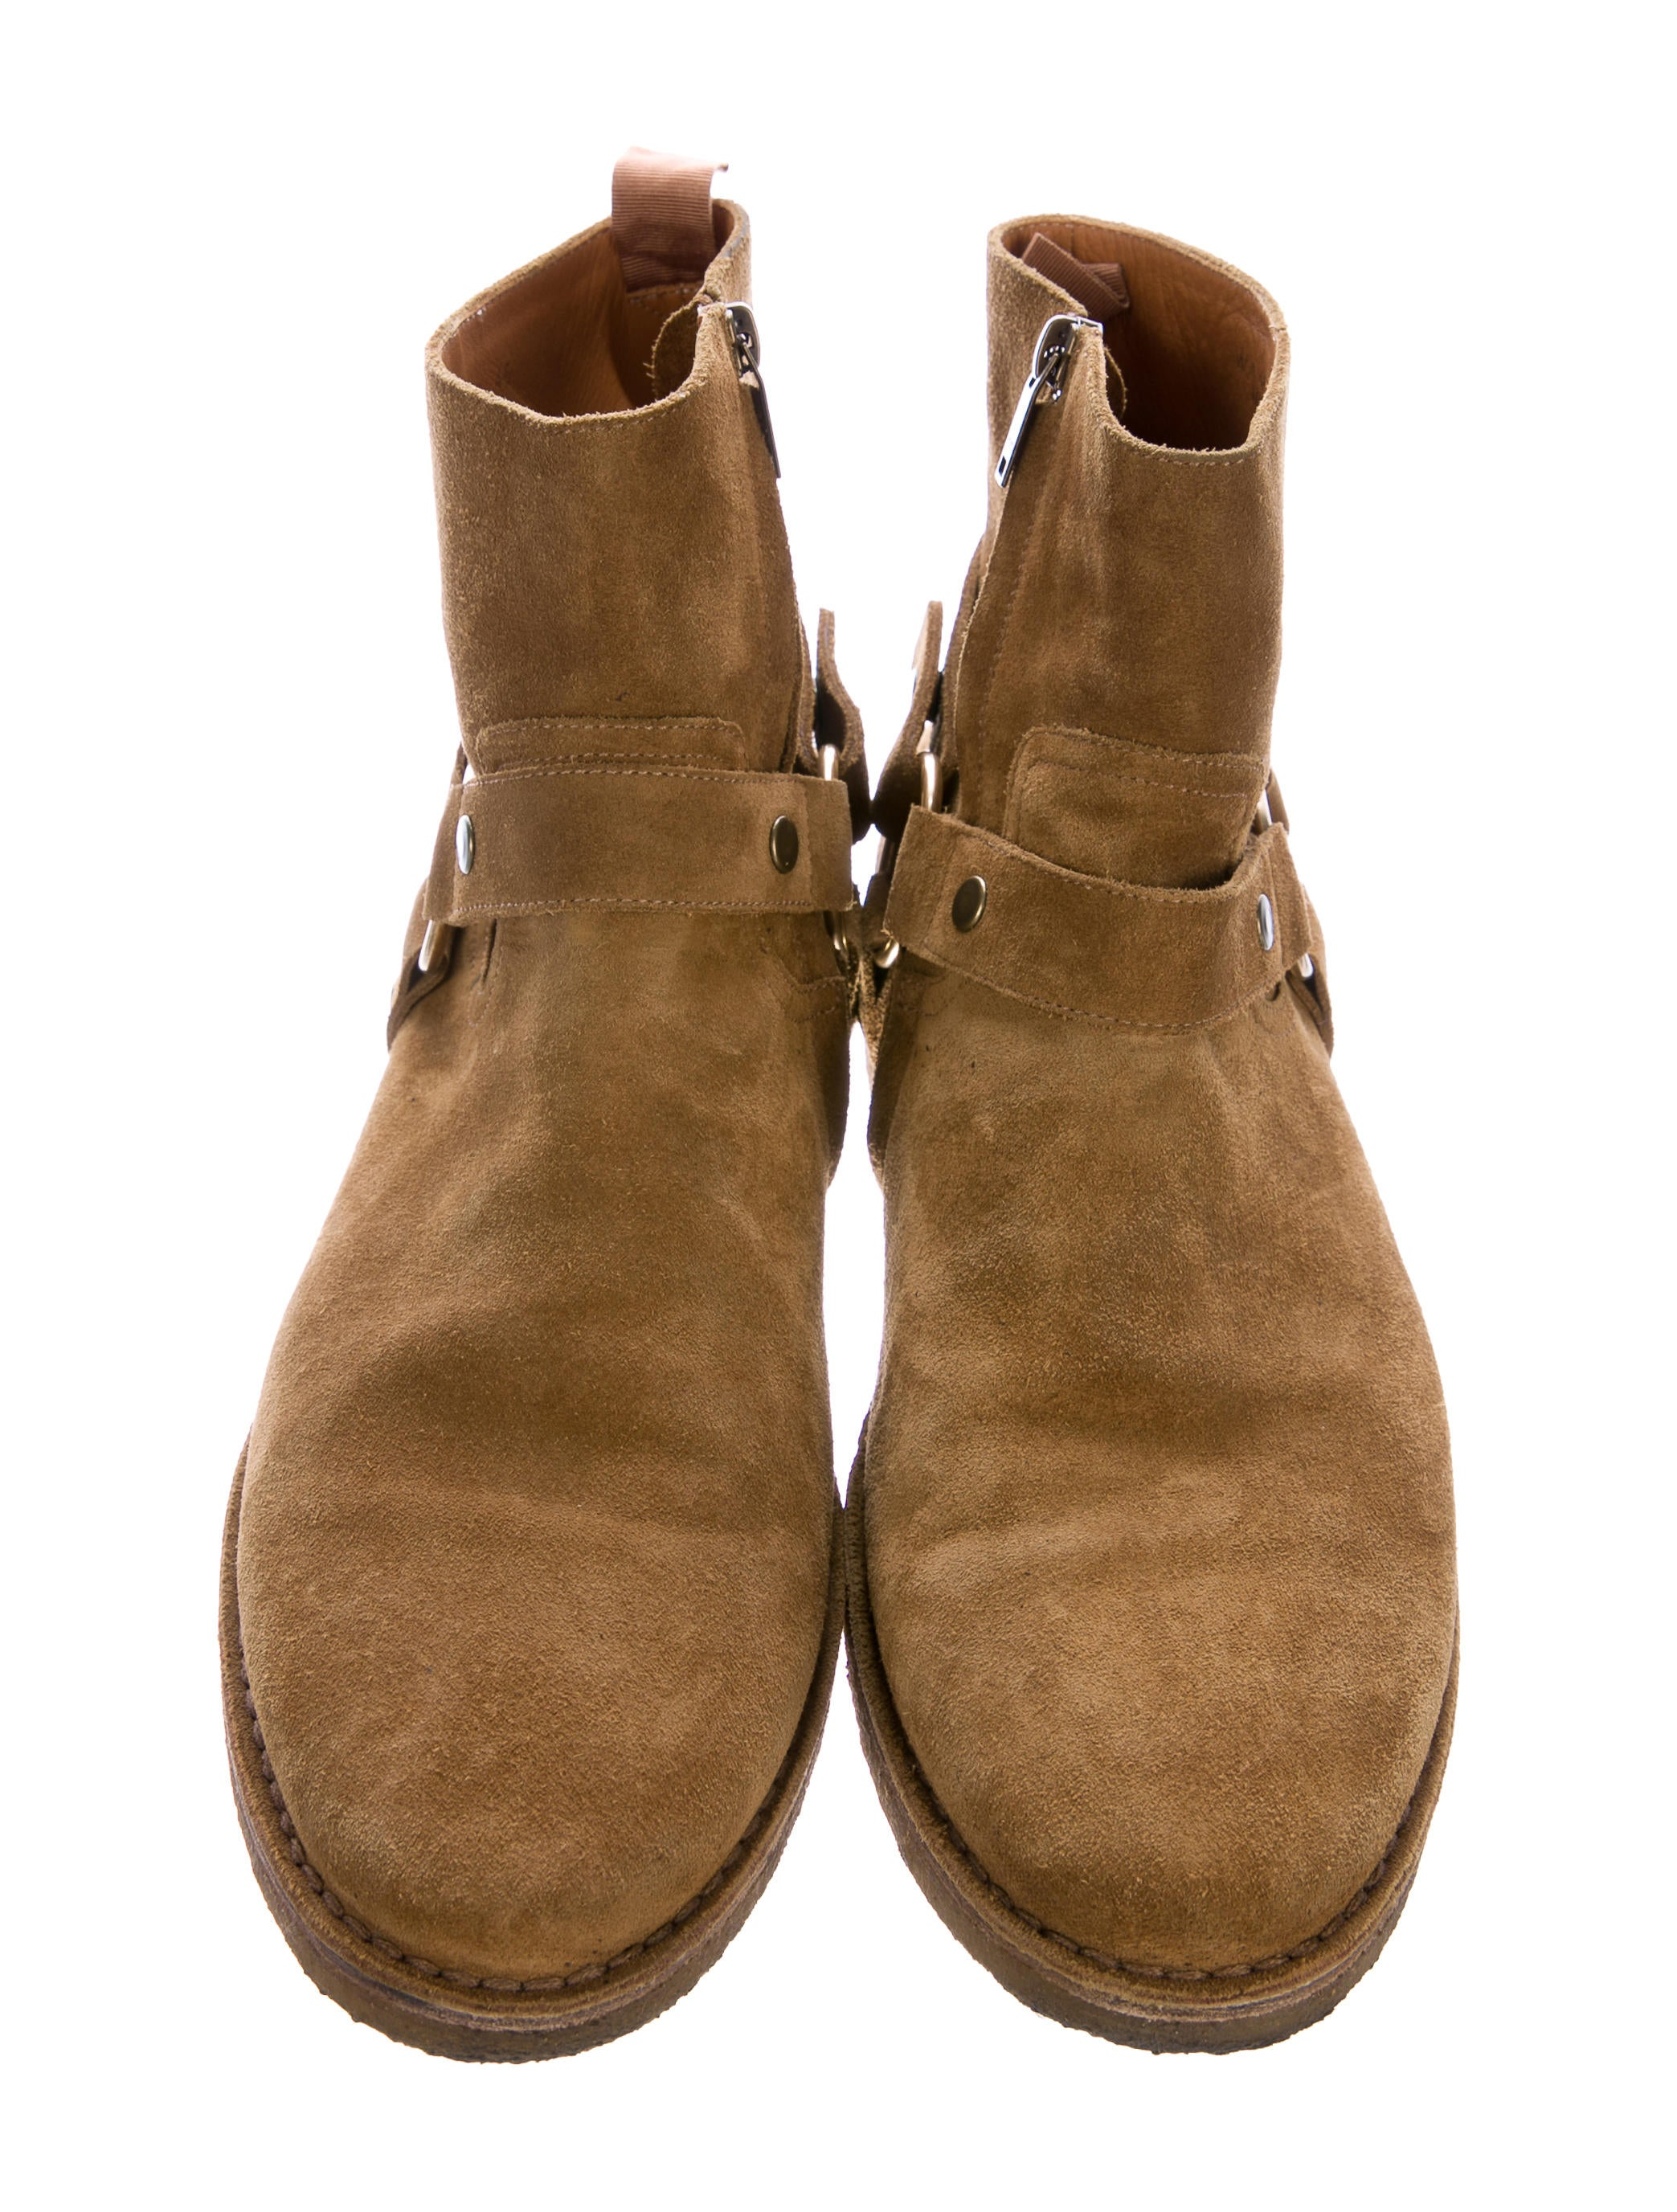 laurent 2017 nevada 20 harness boots shoes